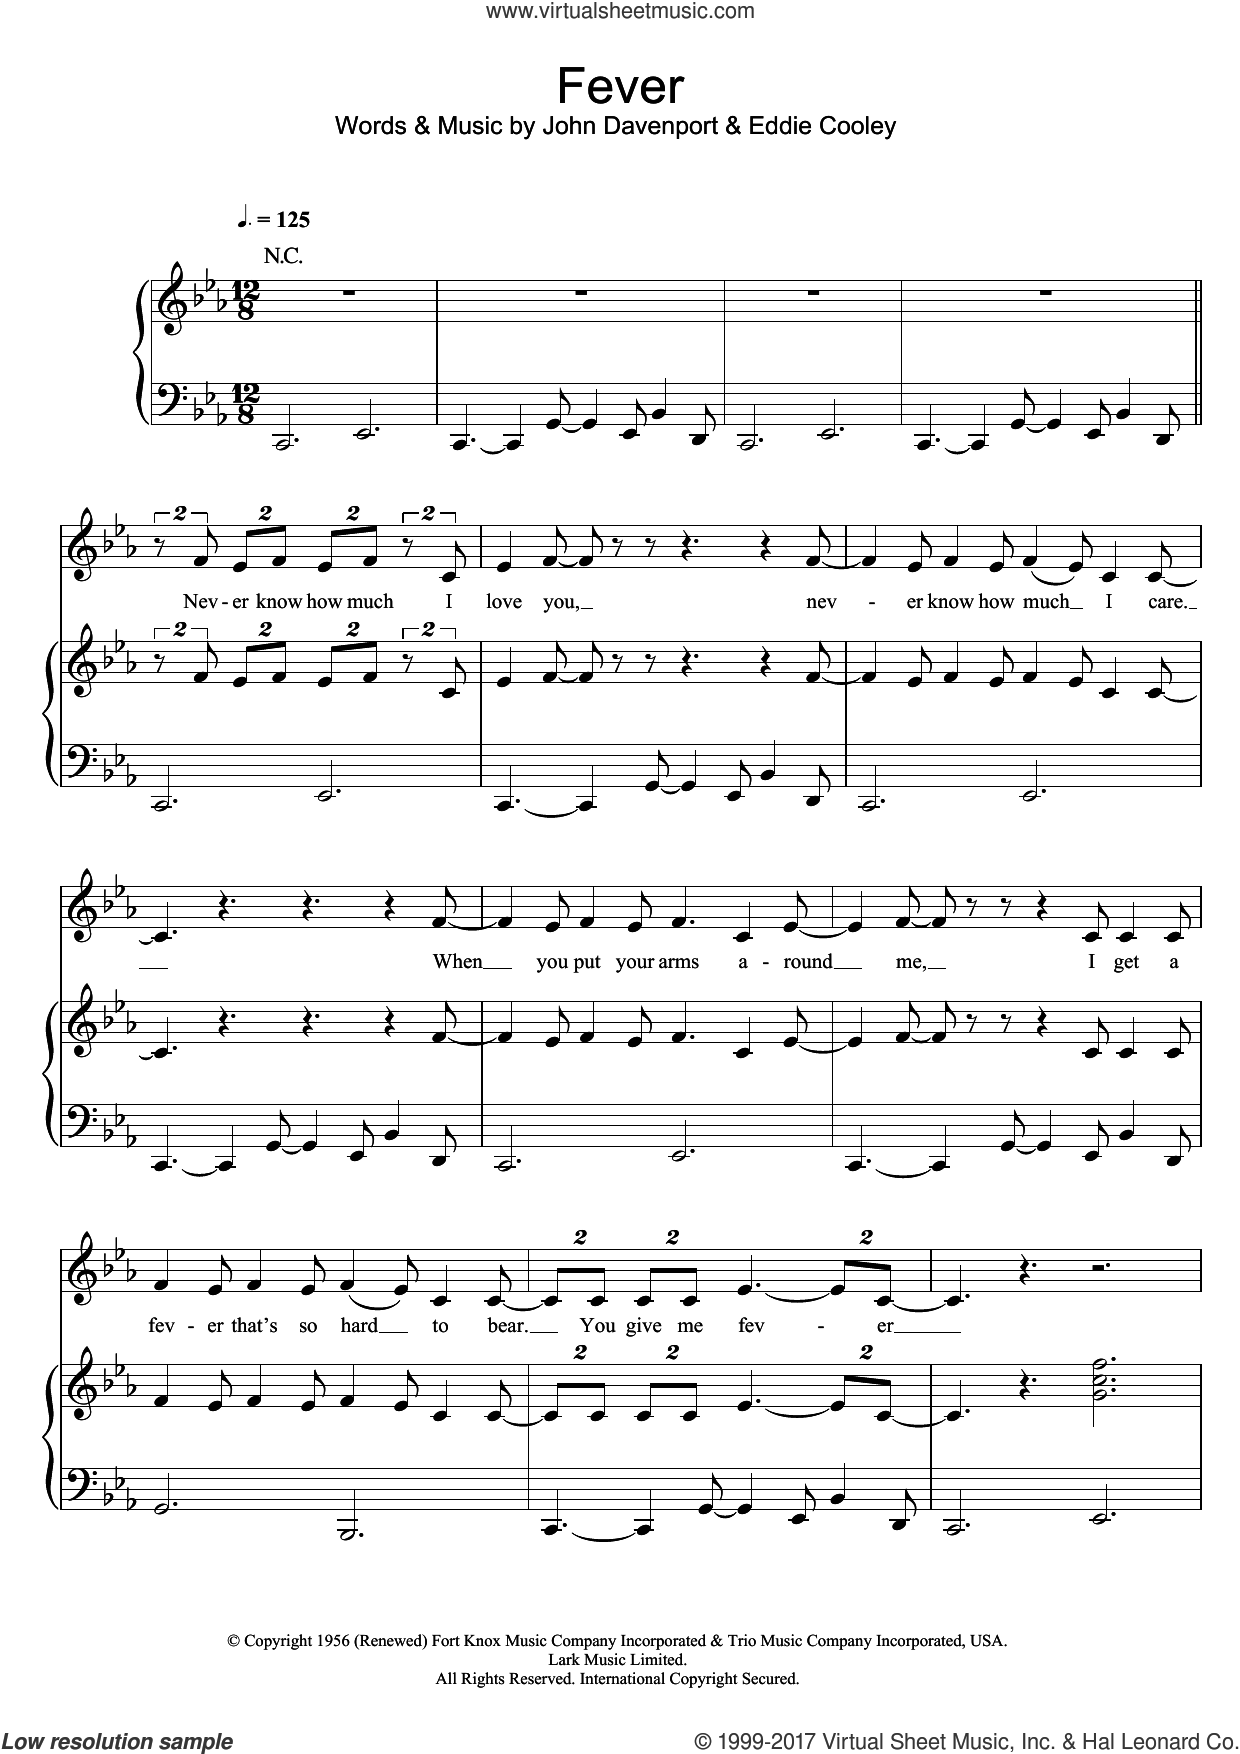 Fever sheet music for voice, piano or guitar by Peggy Lee, Michael Buble, Eddie Cooley and John Davenport, intermediate skill level